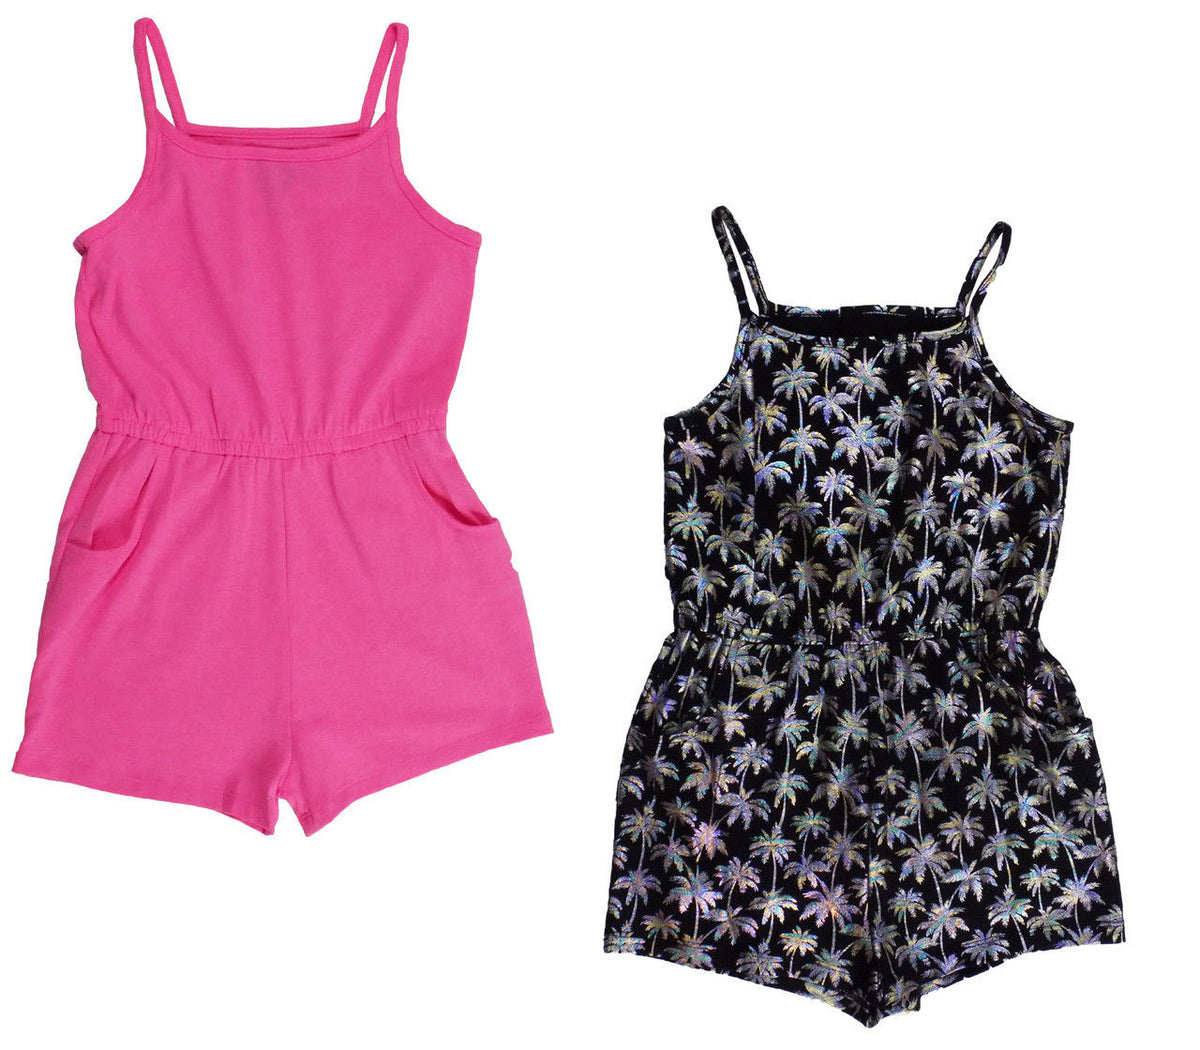 8fc848956b54 Girls 2 Pack of Dresses or Playsuits pink black age 5-15 yrs holiday s –  supercoolgifts